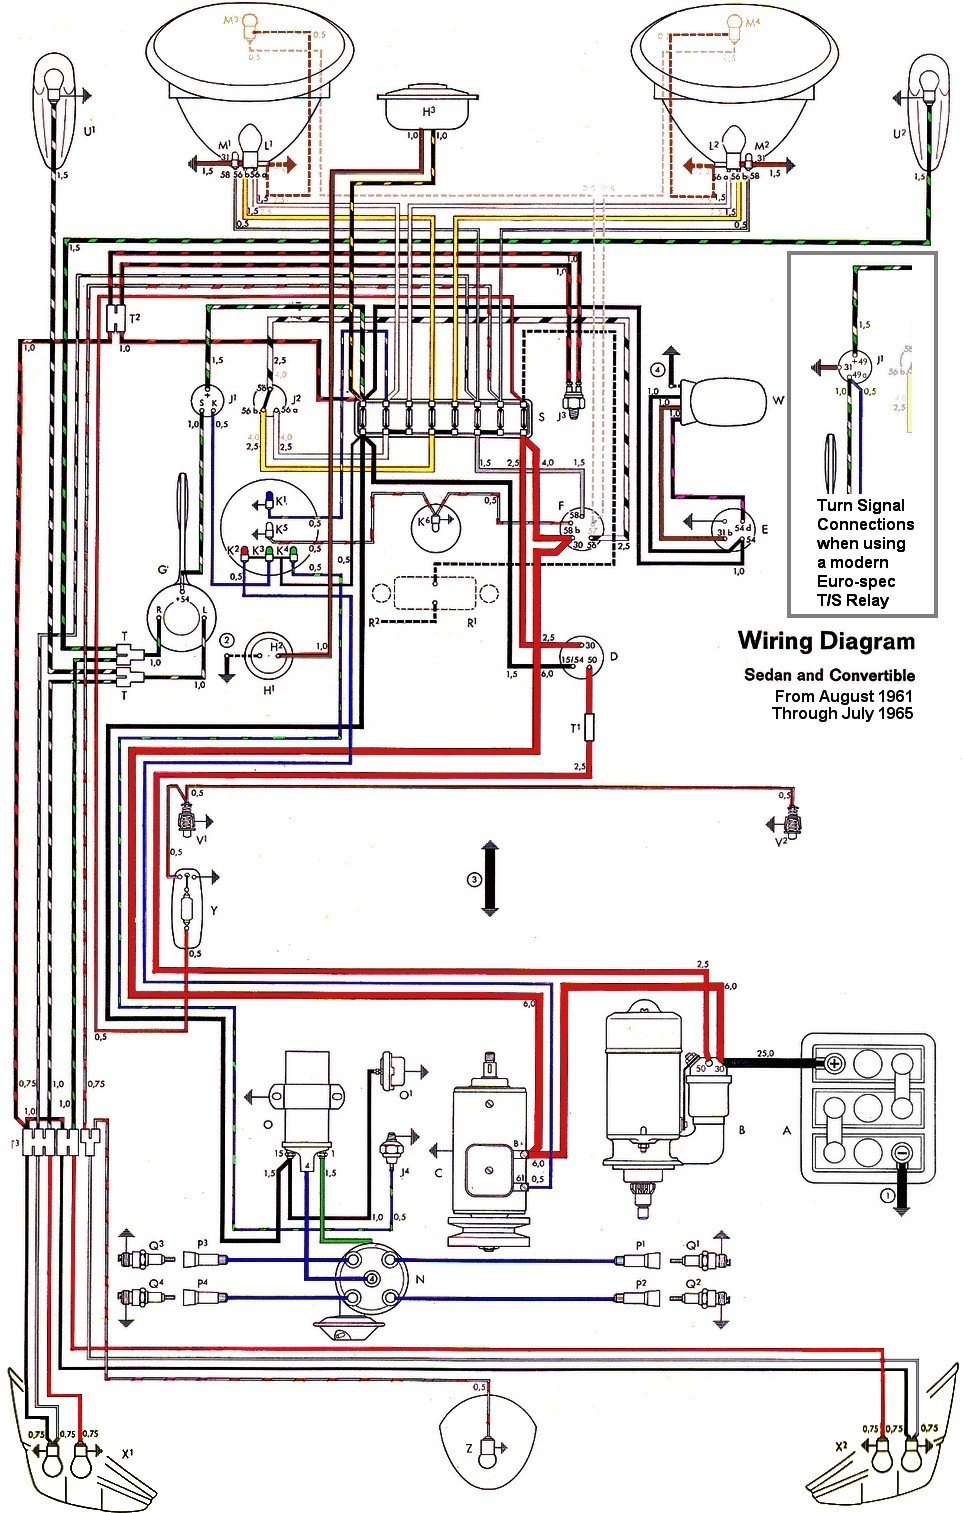 bug_62 65withinset wiring diagram vw beetle sedan and convertible 1961 1965 vw vw beach buggy wiring diagram at gsmx.co